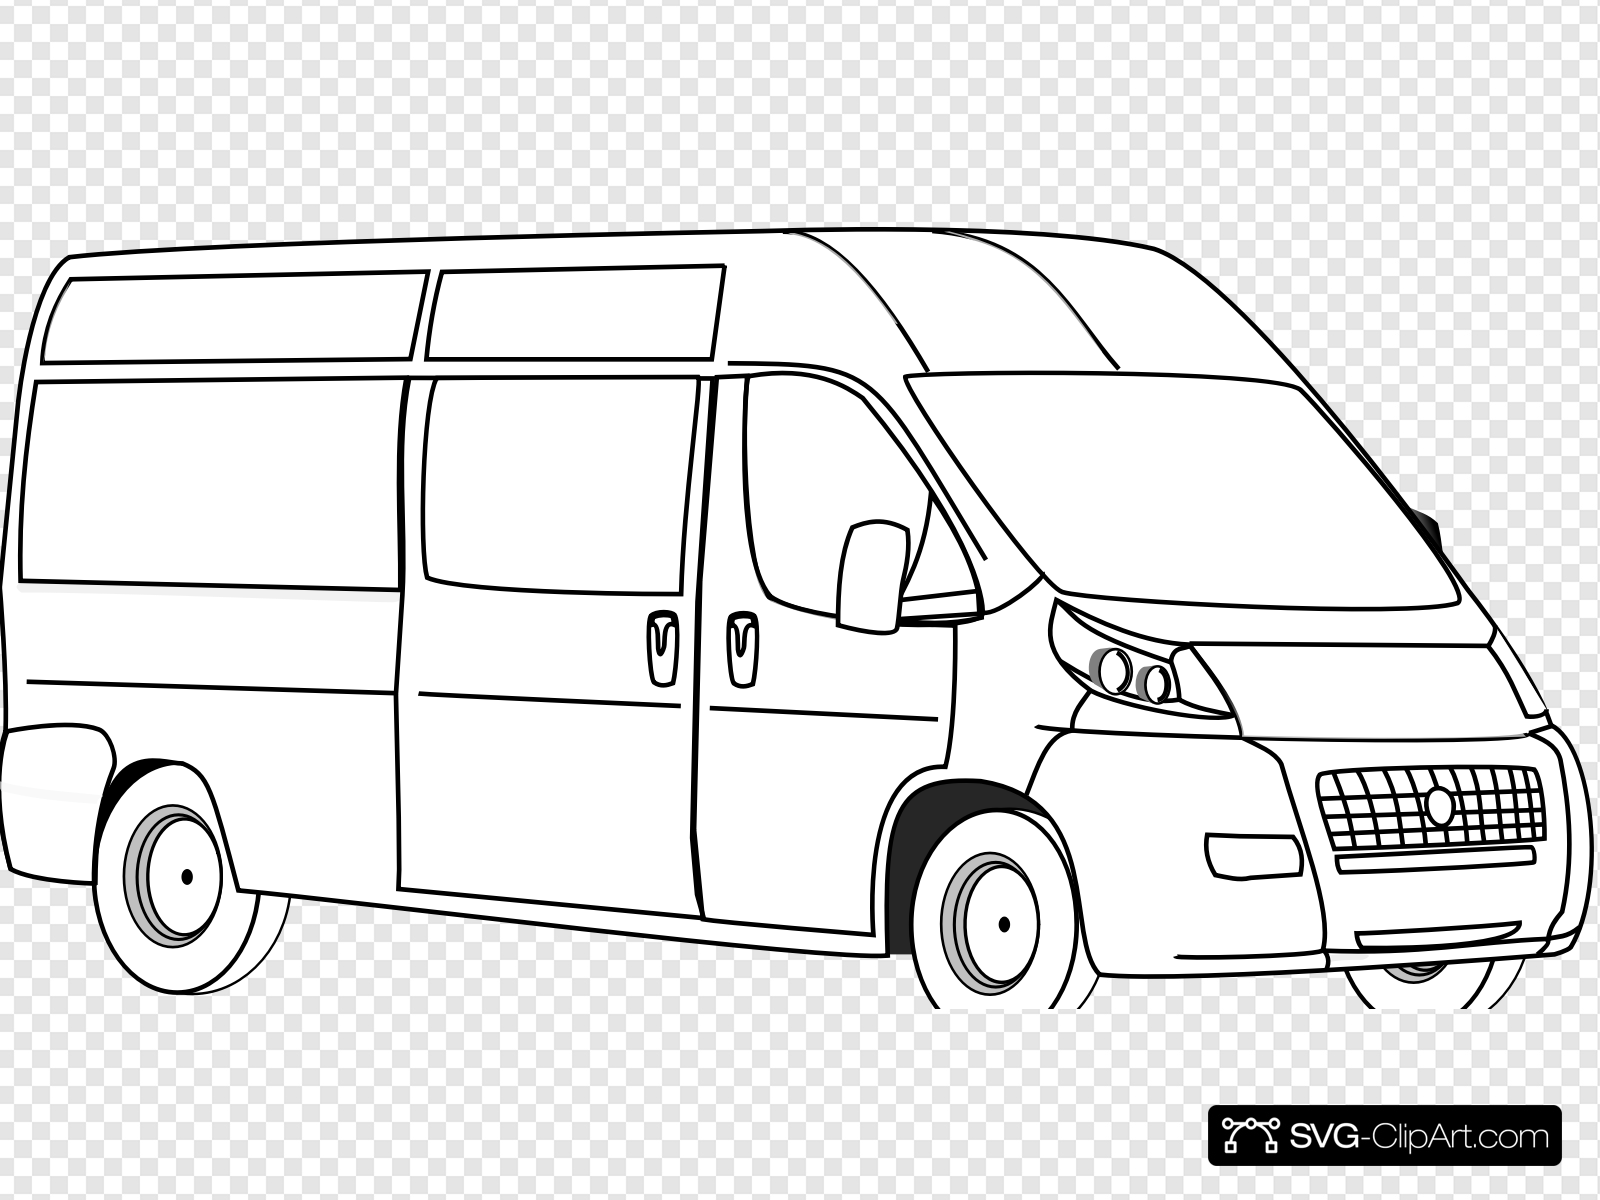 Van For Imagination Connection Clip art, Icon and SVG.